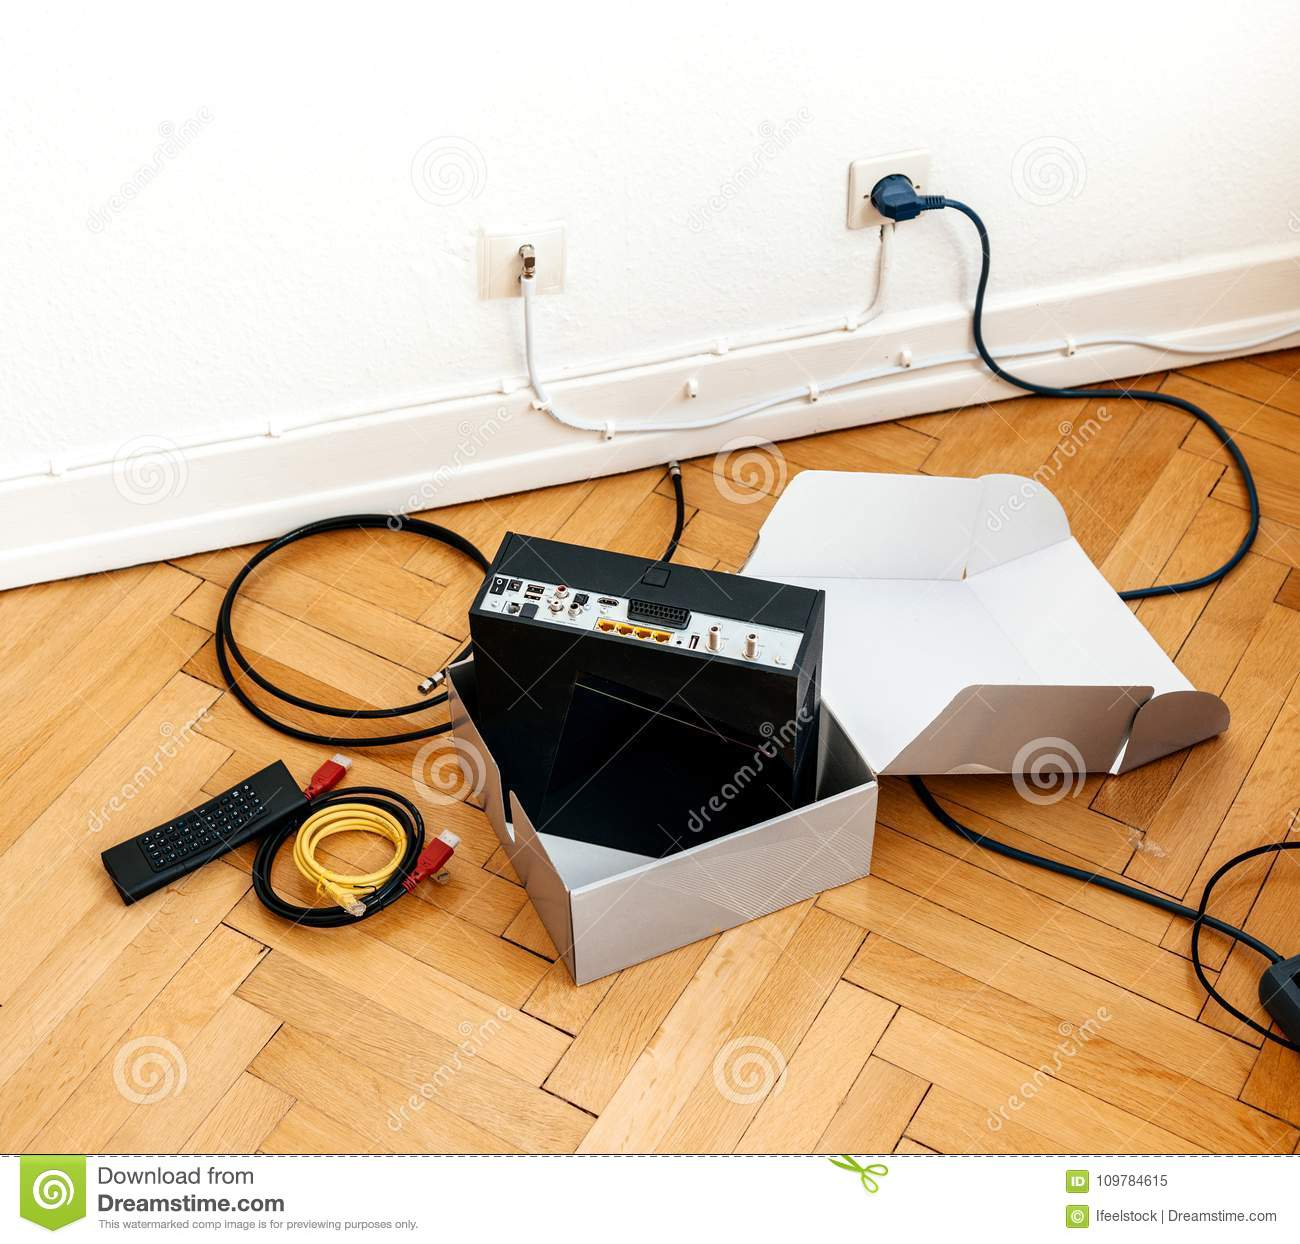 Installation Of Cable Internet Provider Modem Set-box Stock Image ...